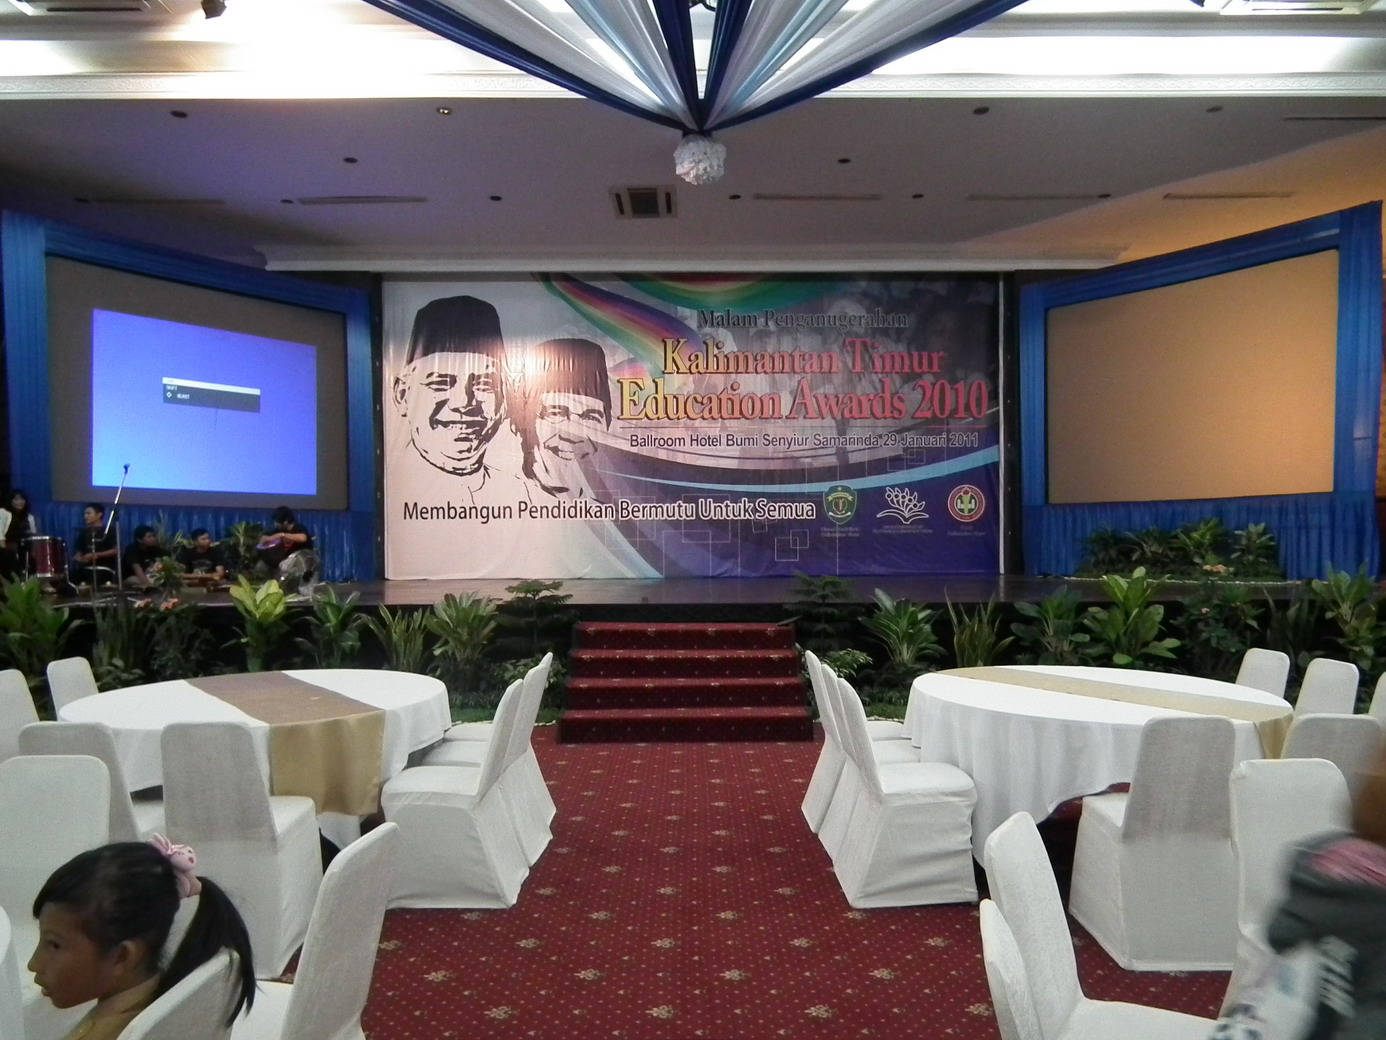 Aida decoration exhibition dekorasi education awards di for Dekorasi birthday di hotel